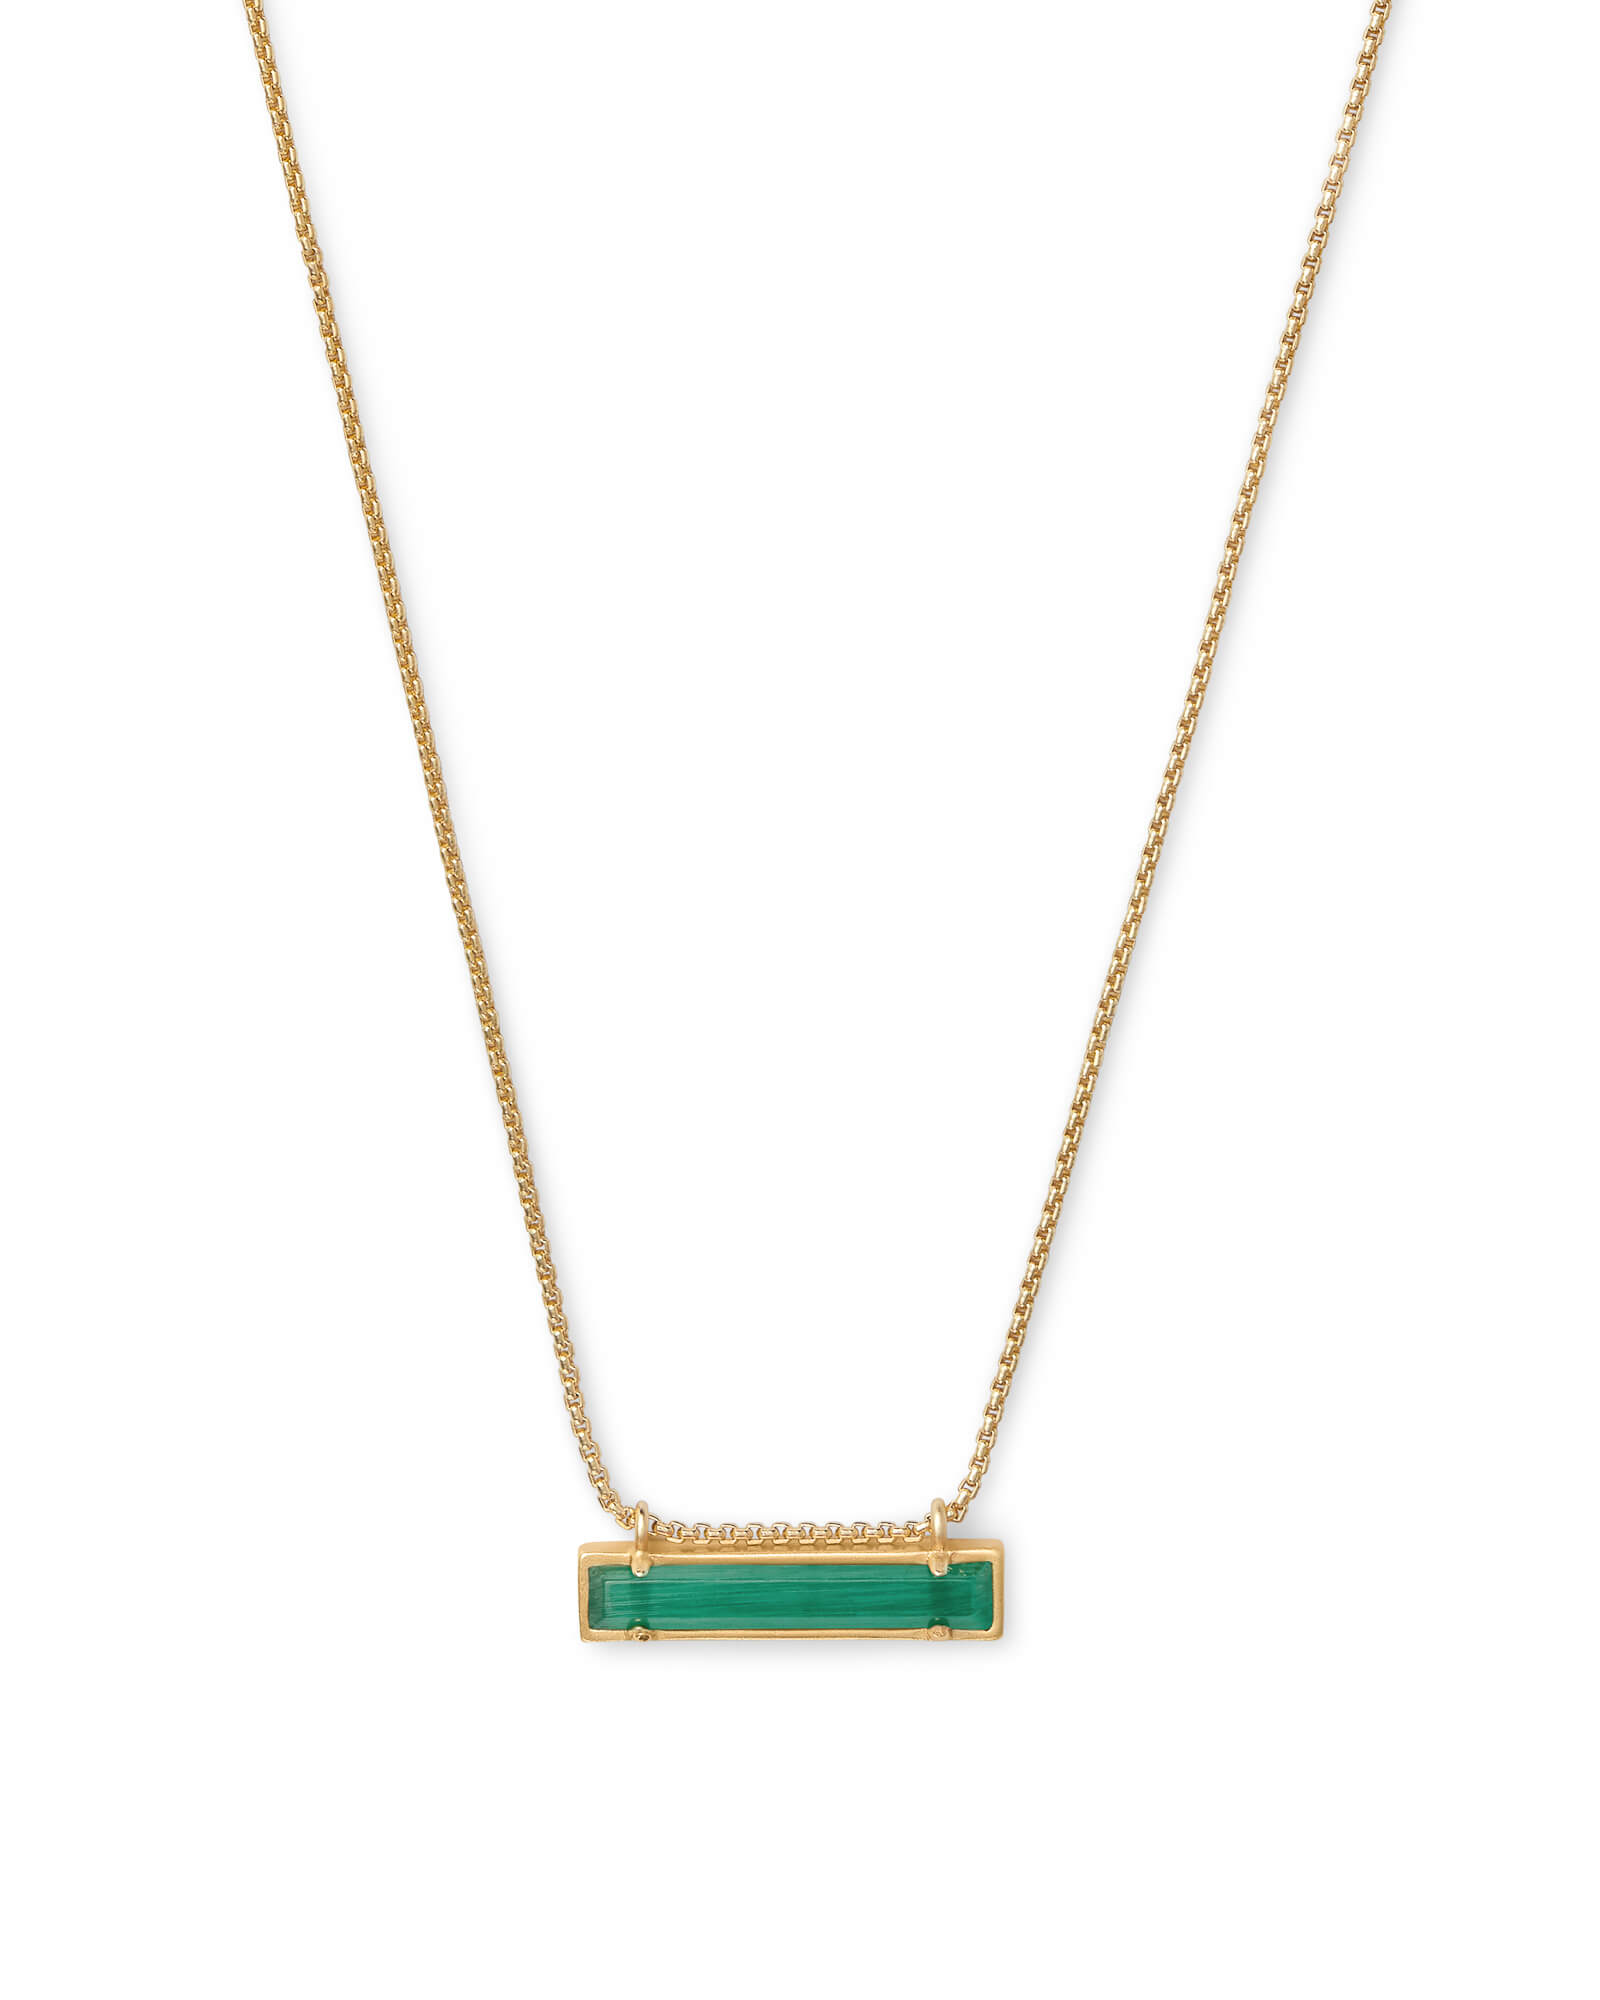 Leanor Gold Pendant Necklace in Emerald Cat's Eye